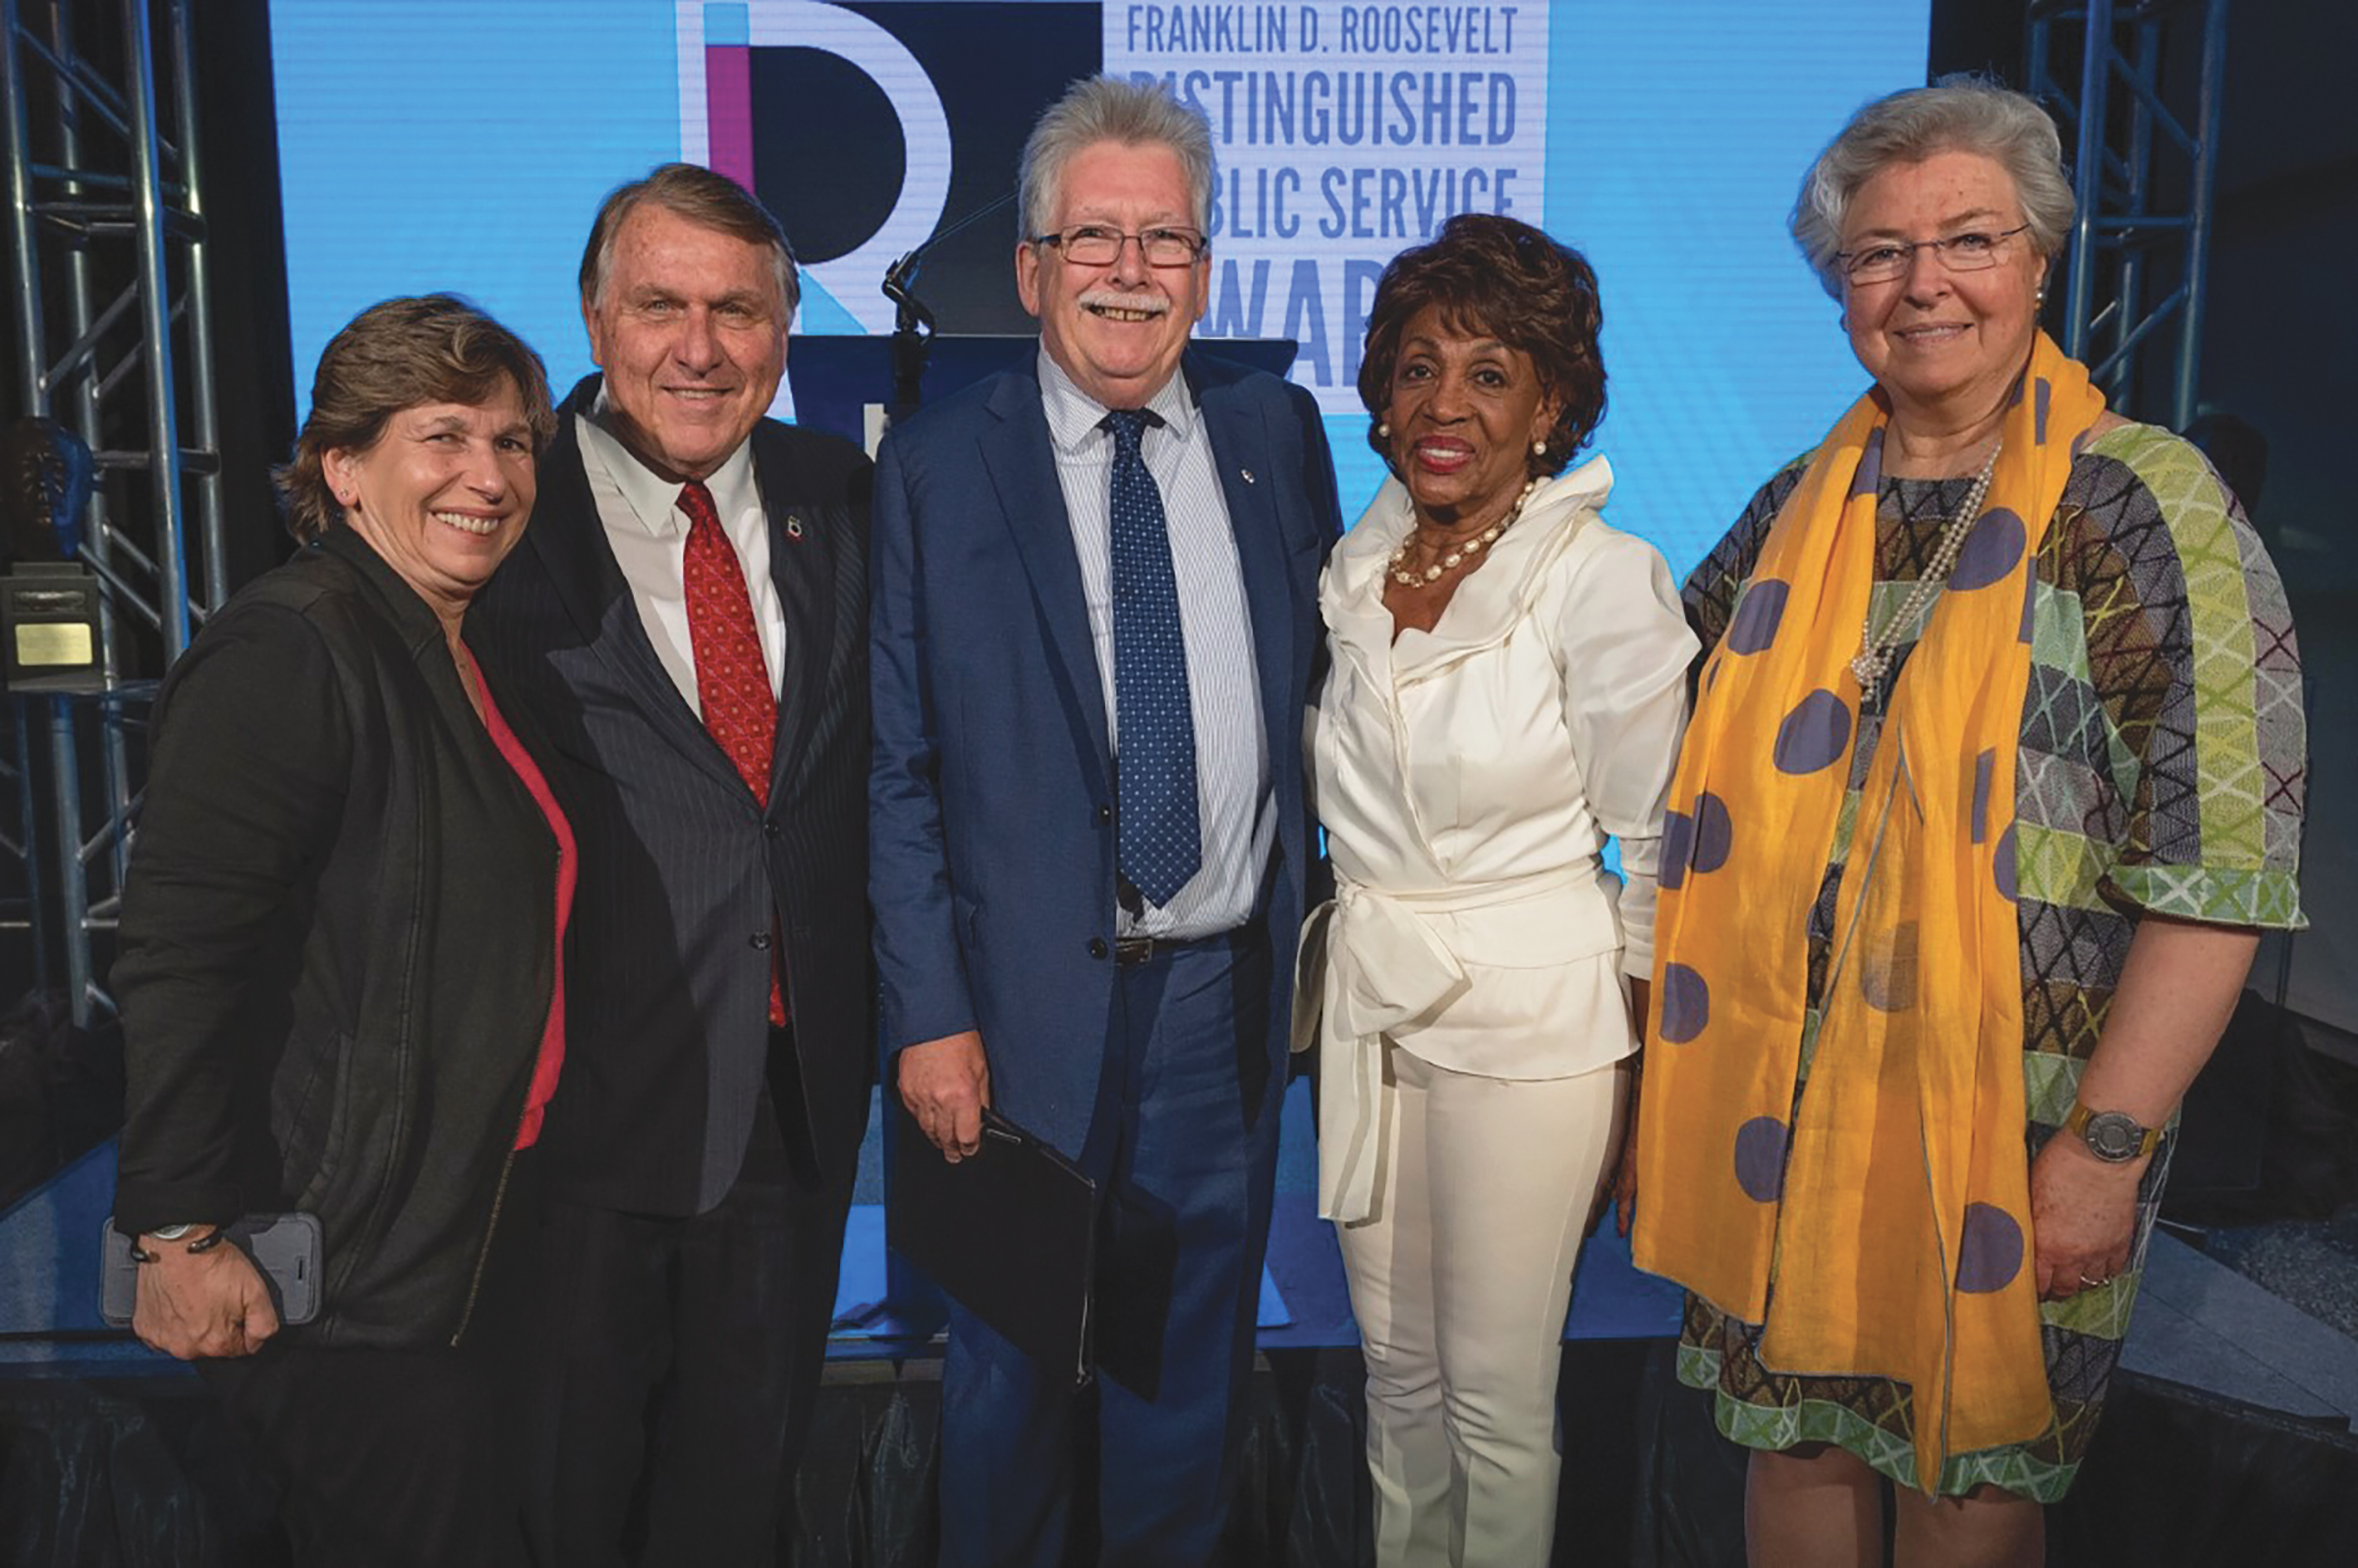 Rep. Maxine Waters (CA-43) with Randi Weingarten (AFT), James P. Hoffa (Teamsters), Christopher P. Shelton (CWA), and Anna Eleanor Roosevelt (Roosevelt Institute) at the 2019 Franklin D. Roosevelt Distinguished Public Service Awards.